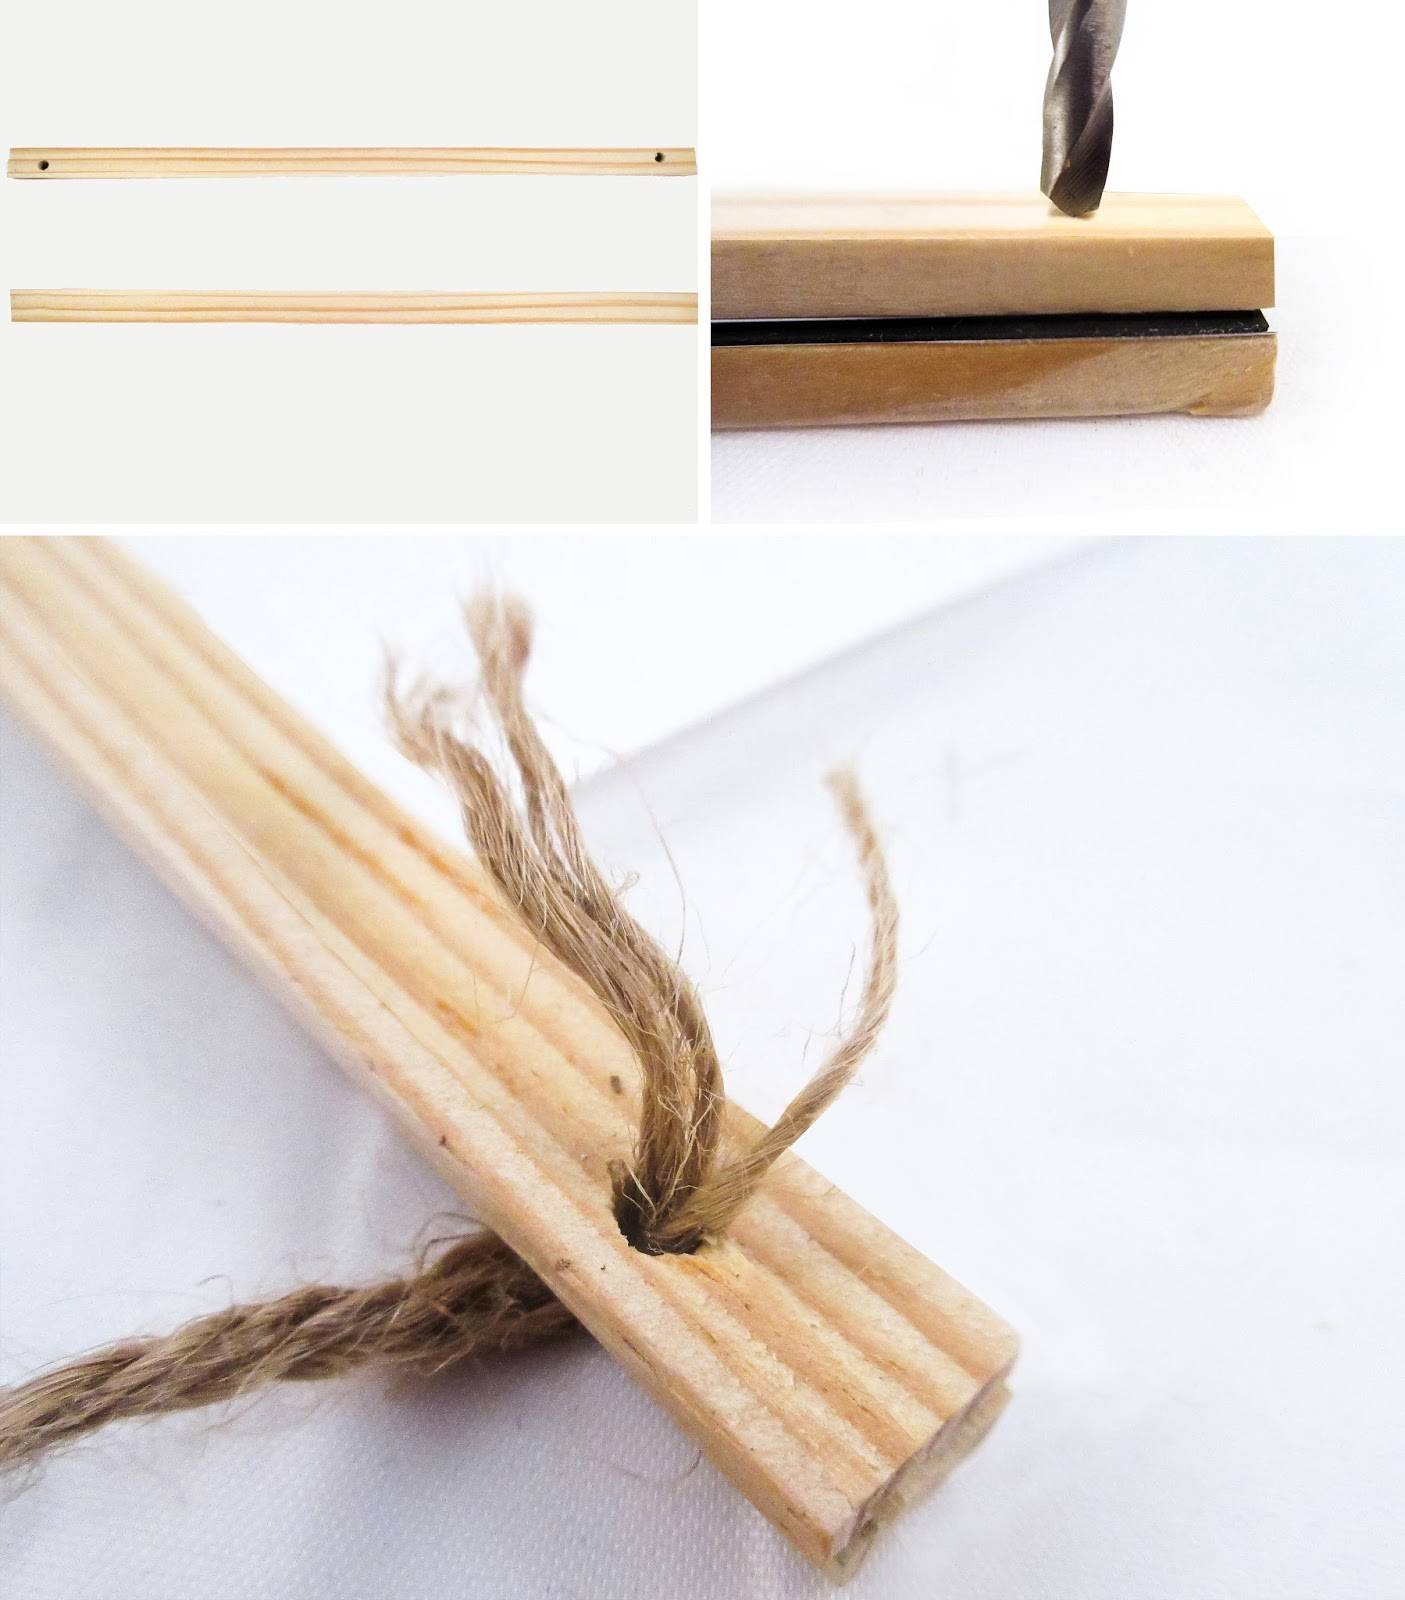 2 take one pair of sticks and allow the magnets to stick together line them up and drill a 316 hole through the wood and the magnetic sheet